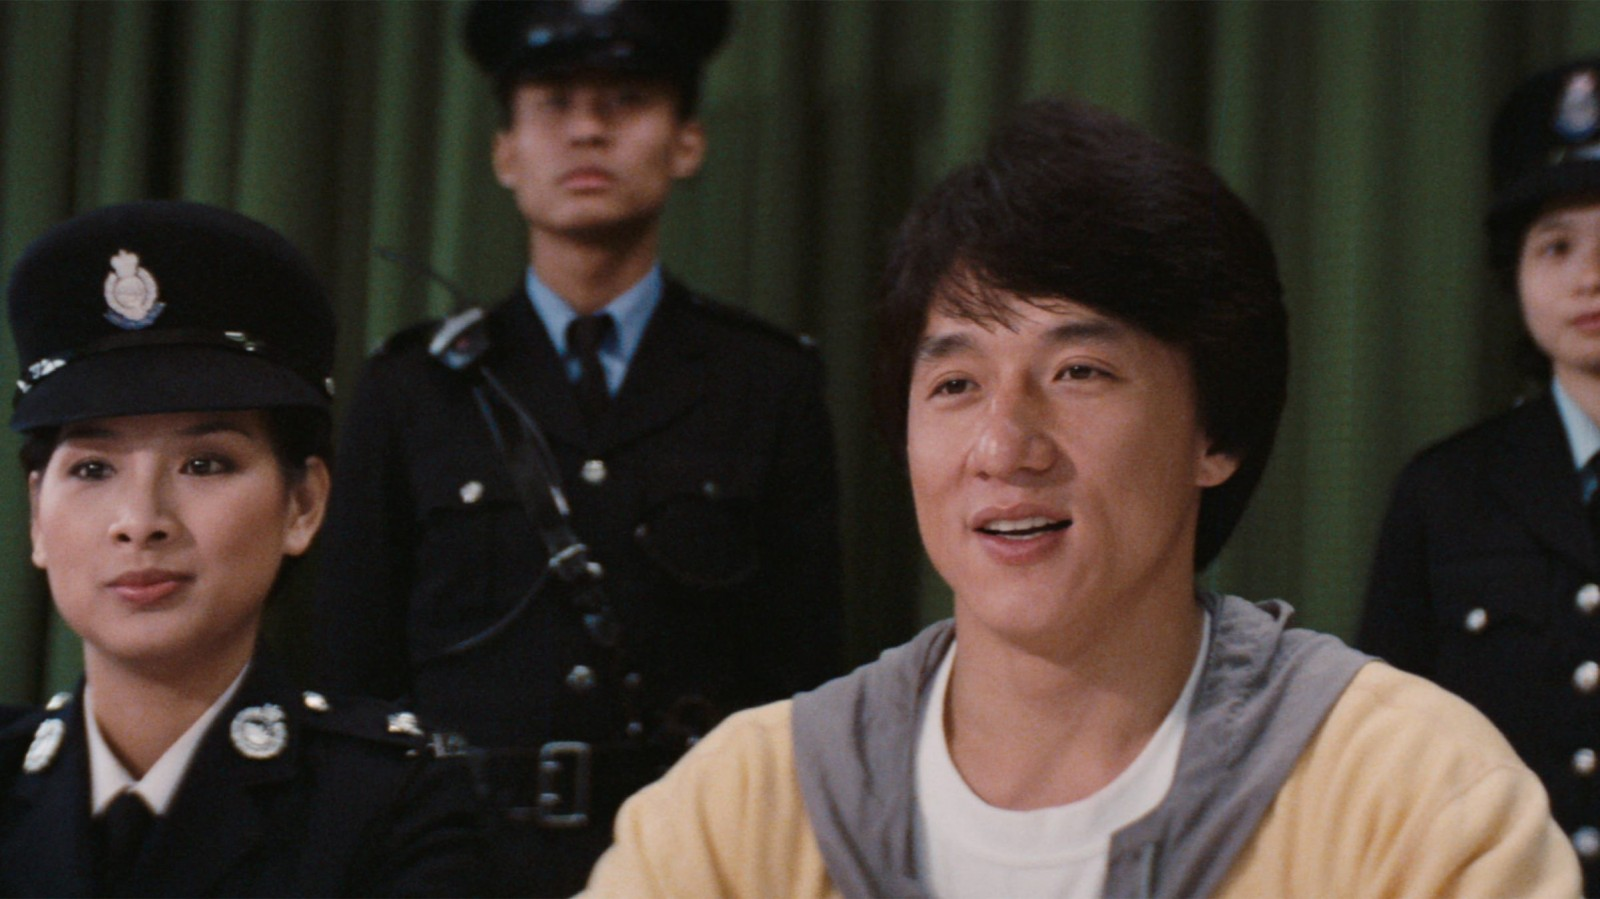 Police Story and Police Story 2: Law and Disorder